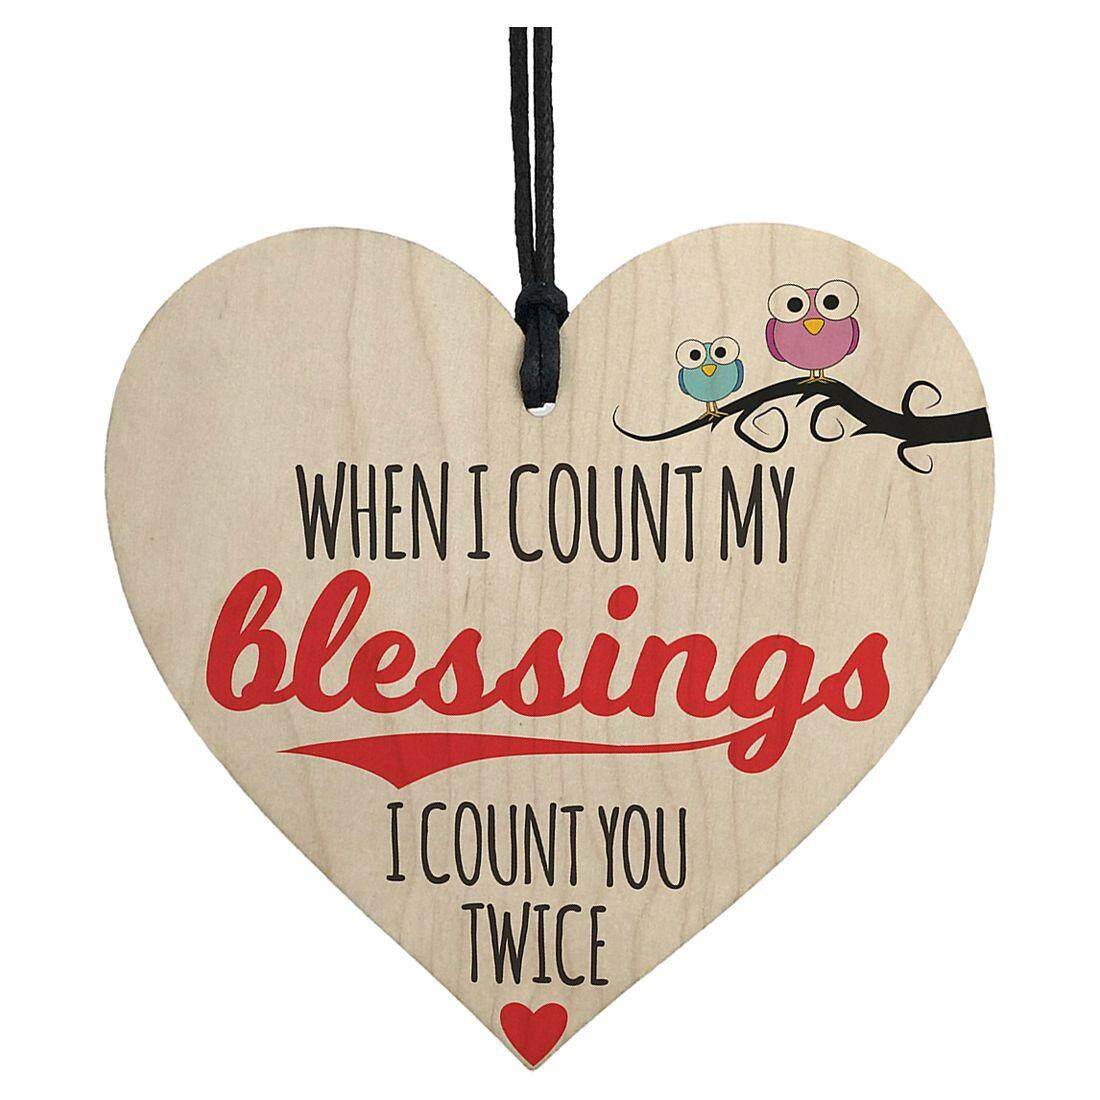 Blessings Count You Twice Wooden Hanging Heart Plaque Friendship Love Gift Sign